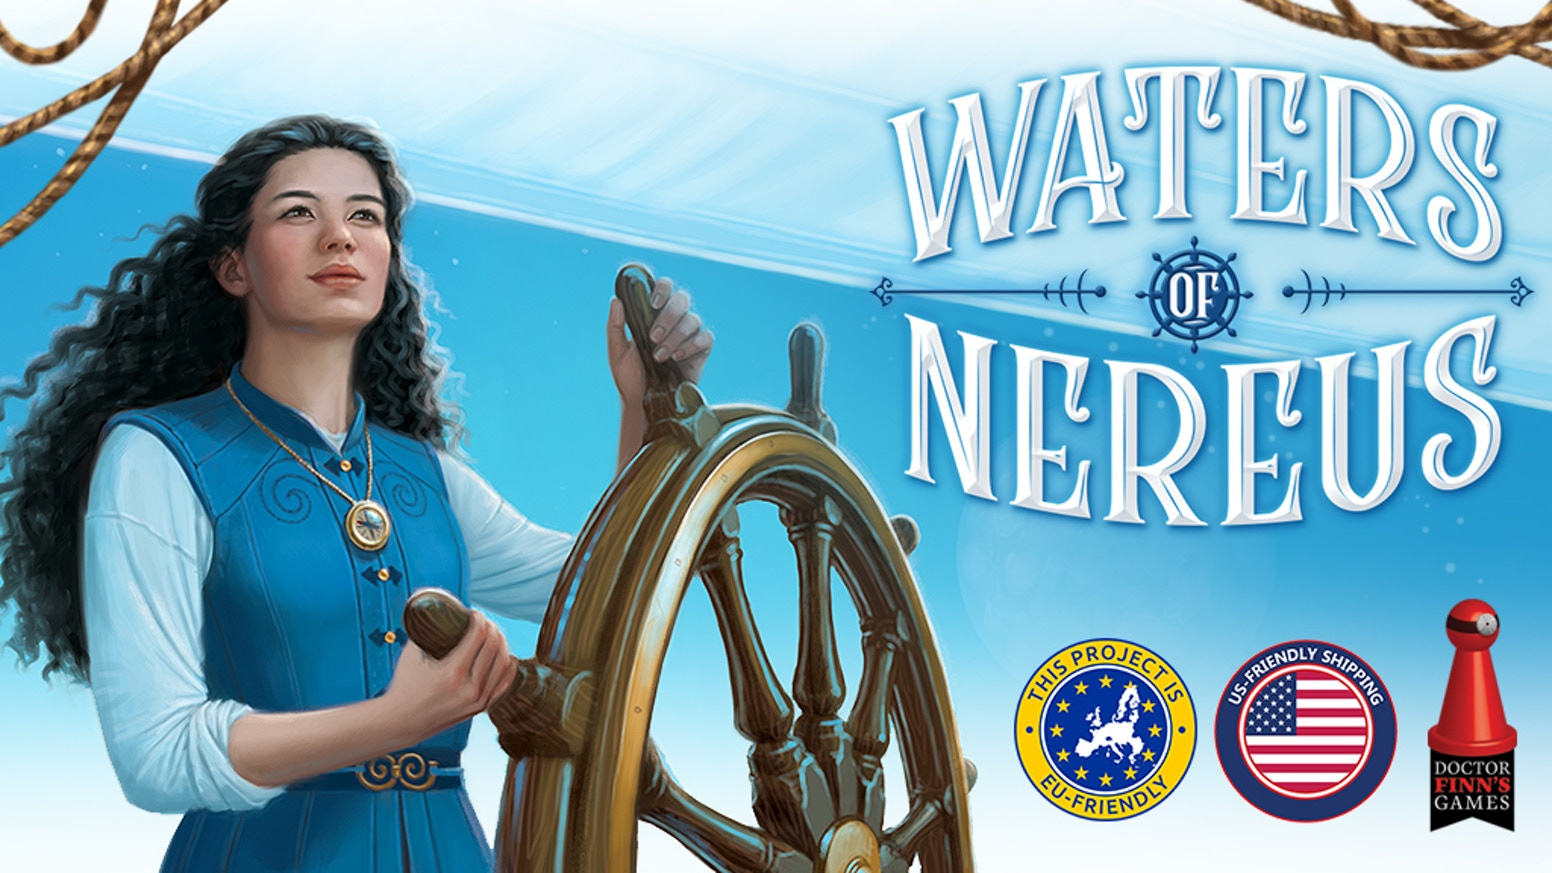 Sail the high seas of Nereus, a fantasy water world rich with treasures! From the designer of Biblios and illustrated by Beth Sobel.